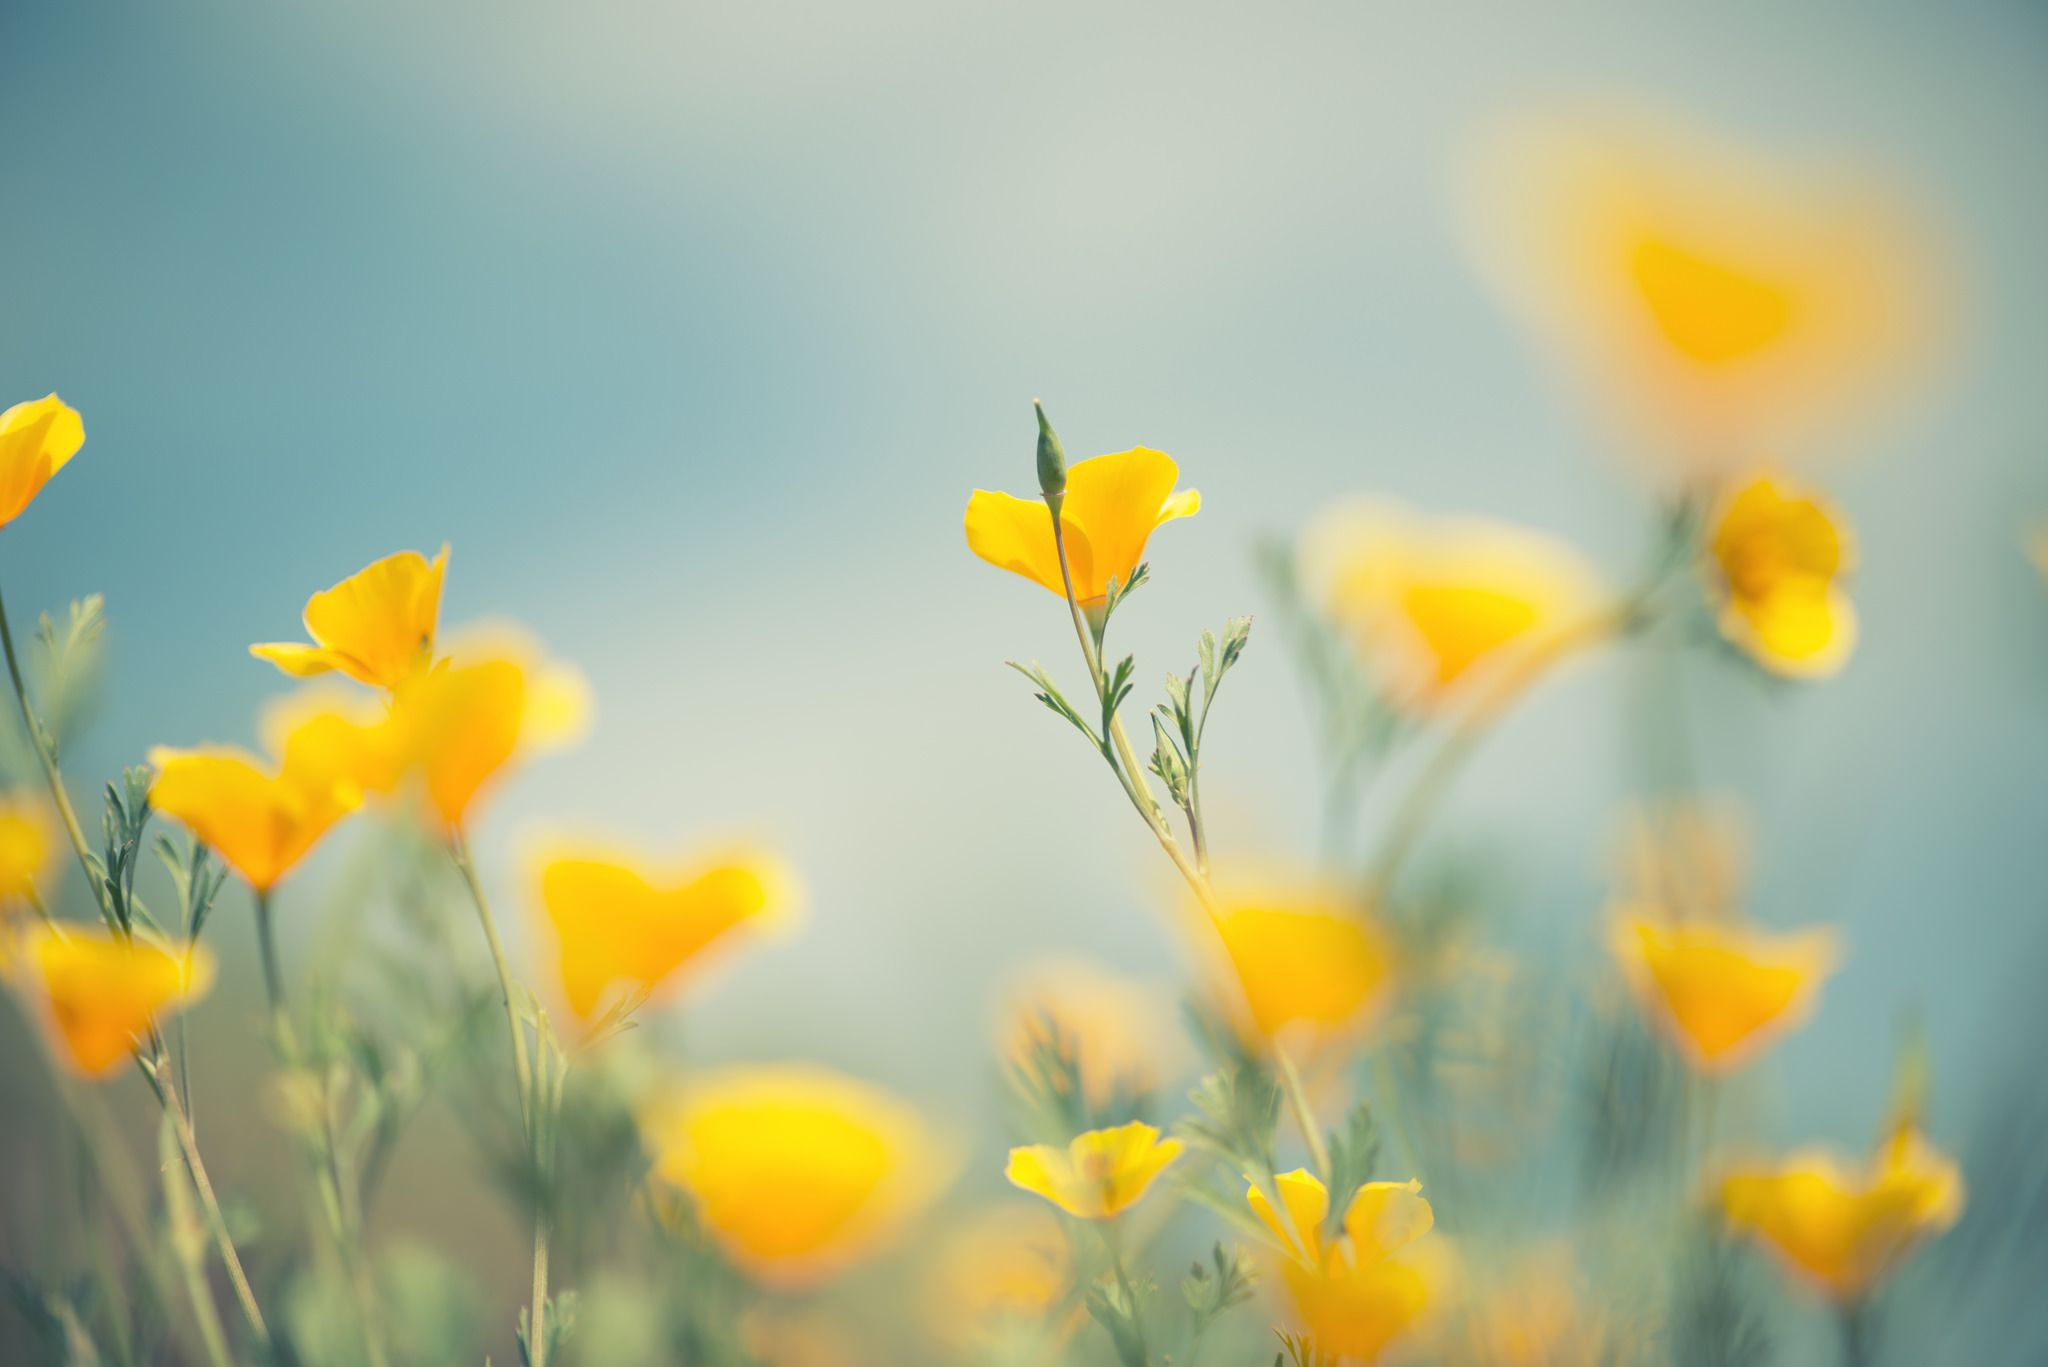 soft focus on buds yellow field flowers Yellow flower